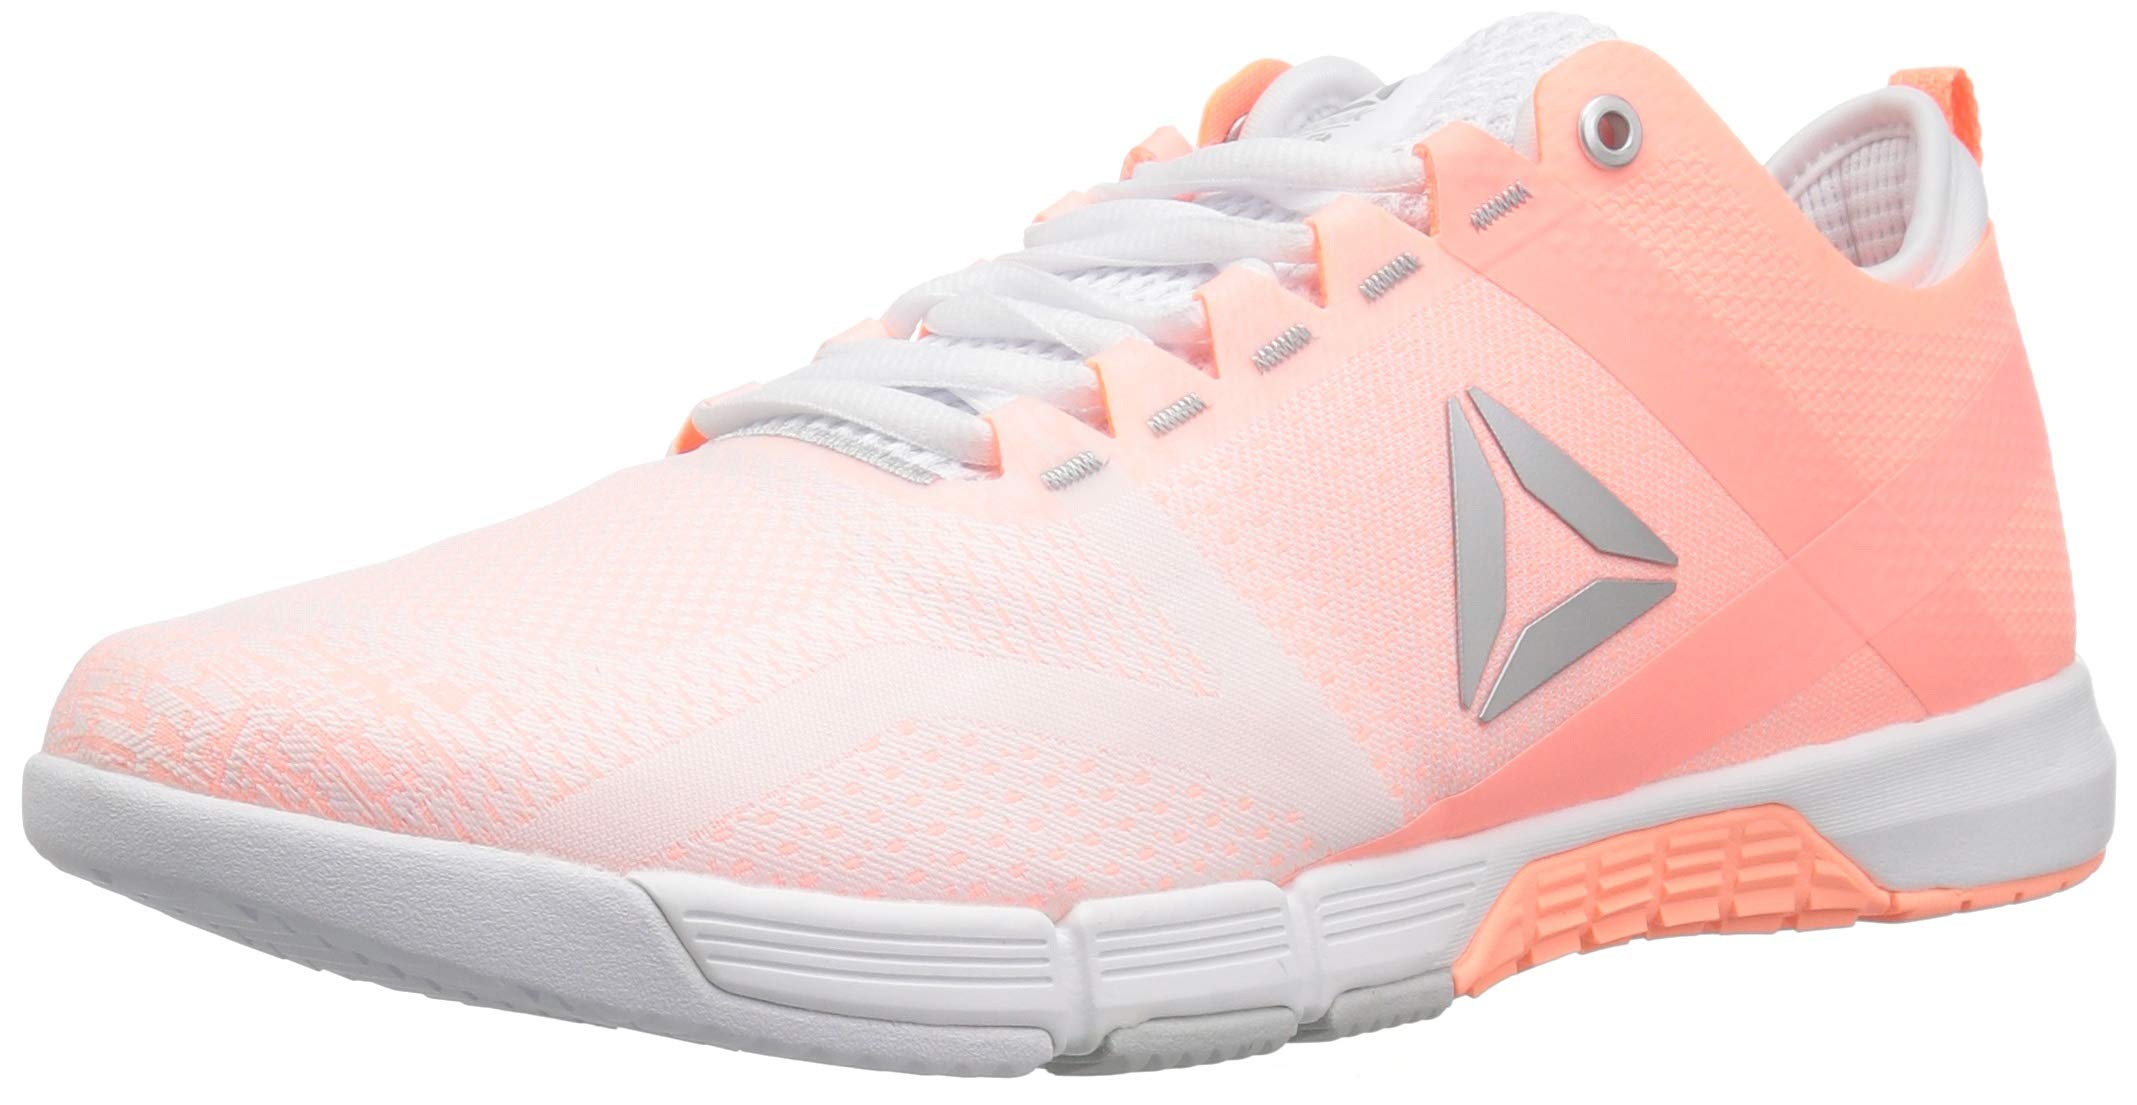 f3826542f348 Galleon - Reebok Women s CROSSFIT Grace Tr Cross Trainer